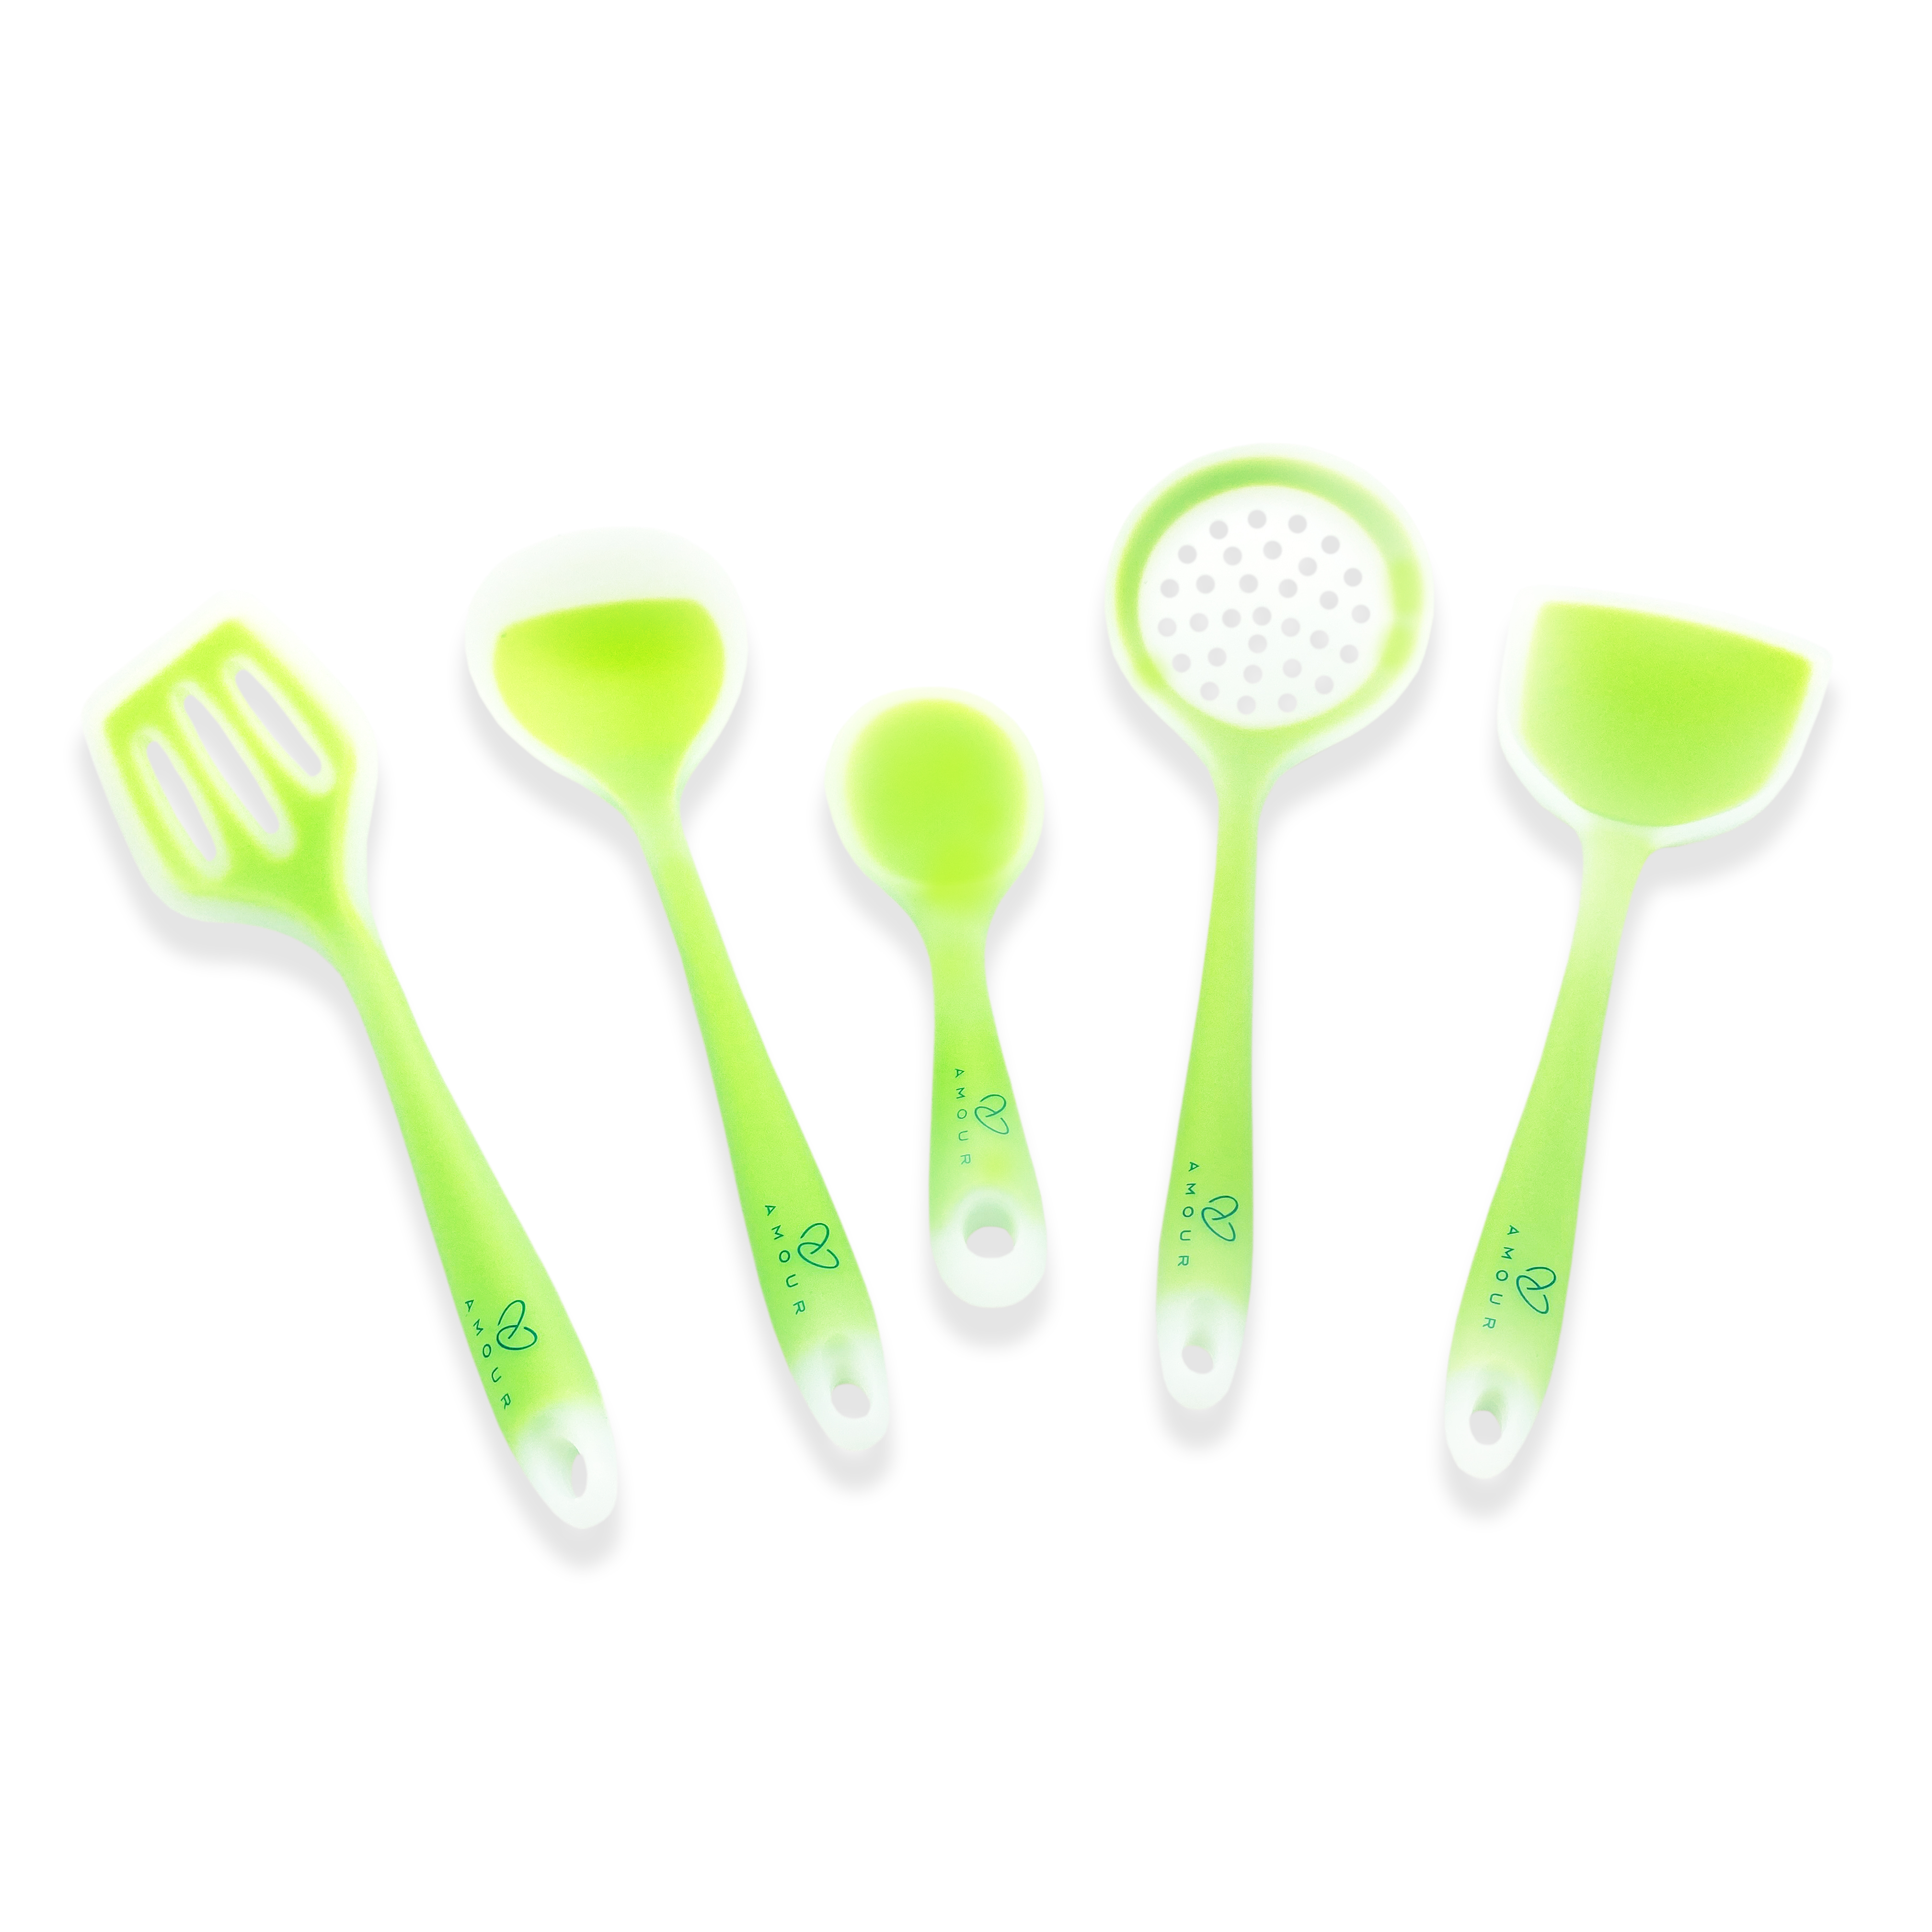 Amour   Amour Translucent Silicone Cooking Baking Serving Utensils Spatula Set for Nonstick Cookware, 5 Piece Green